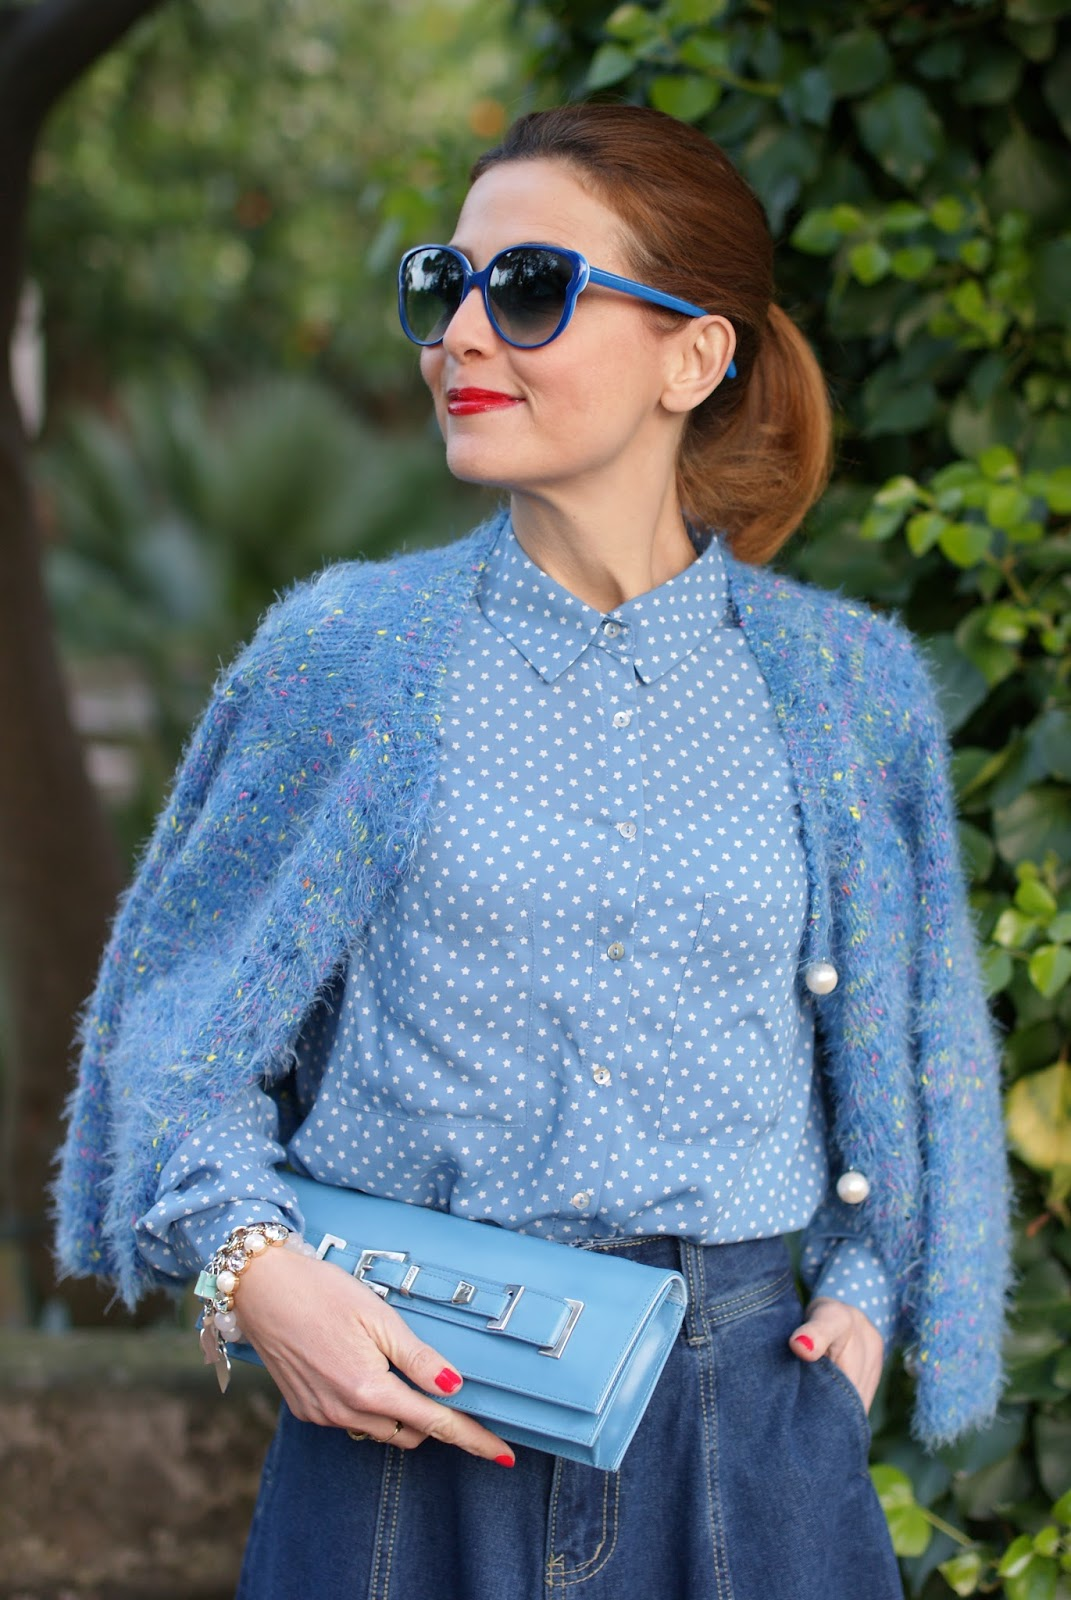 Blue serenity star print shirt on Fashion and Cookies fashion blog, fashion blogger style